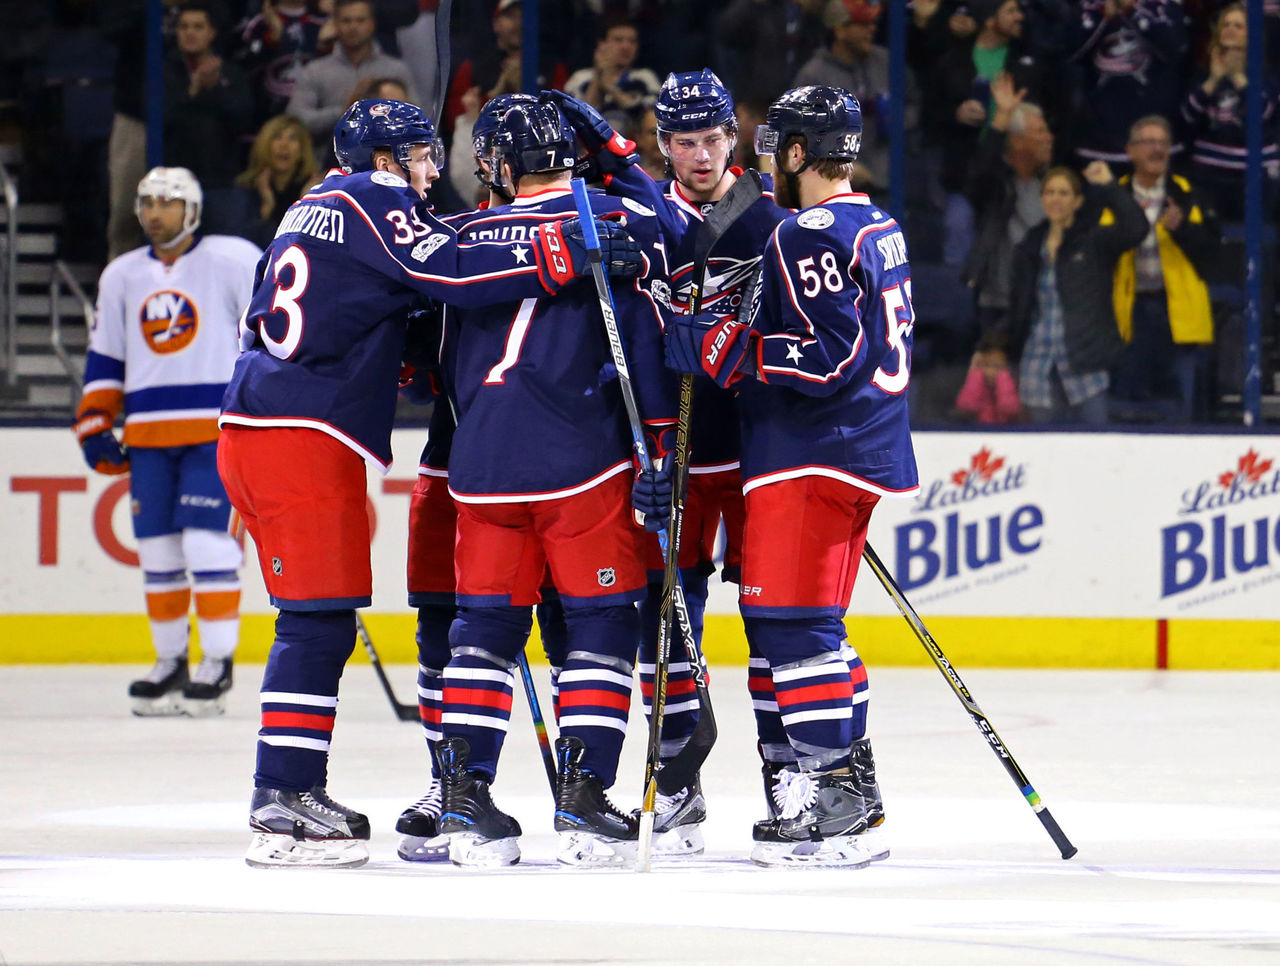 Cropped 2017 02 25t230745z 903464178 nocid rtrmadp 3 nhl new york islanders at columbus blue jackets